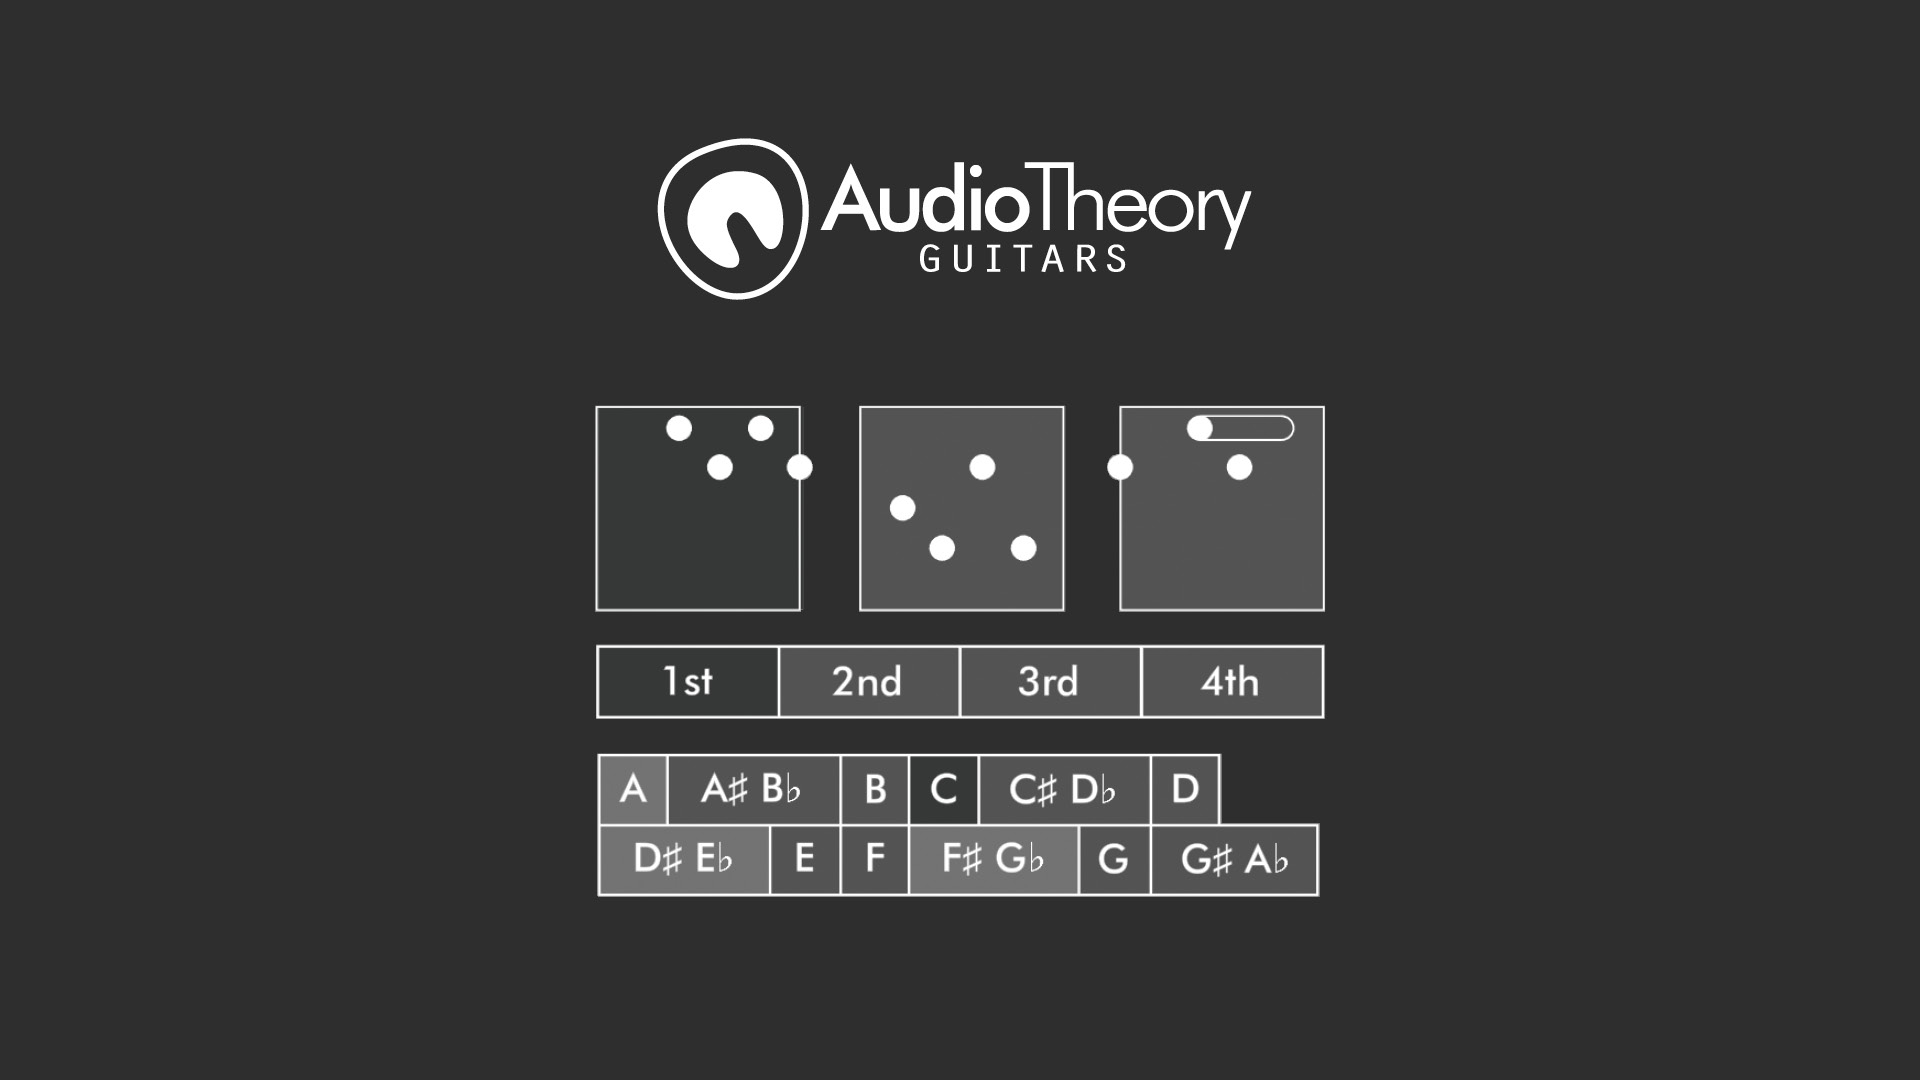 AudioTheory Guitars Diminished 7 Chords Update